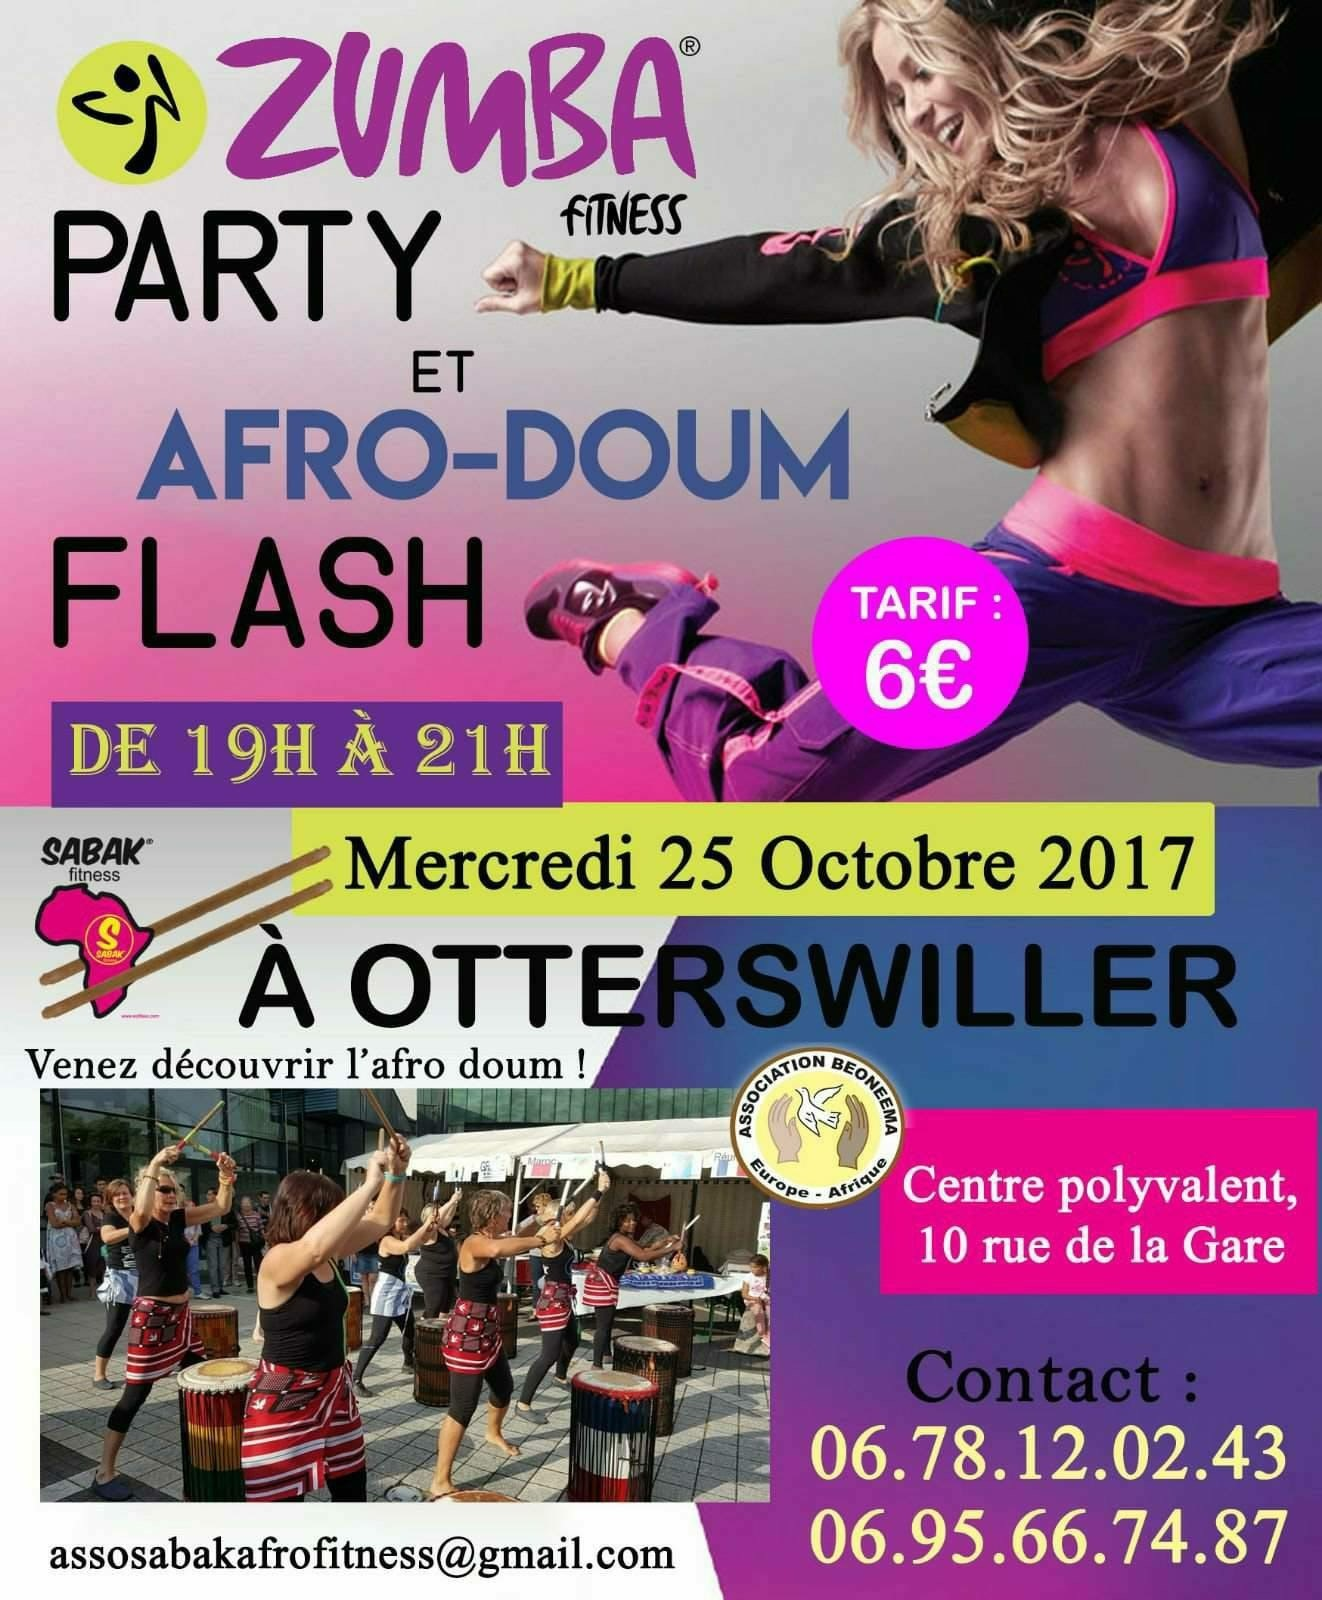 ZUMBA PARTY ET AFRO-DOUM FLASH